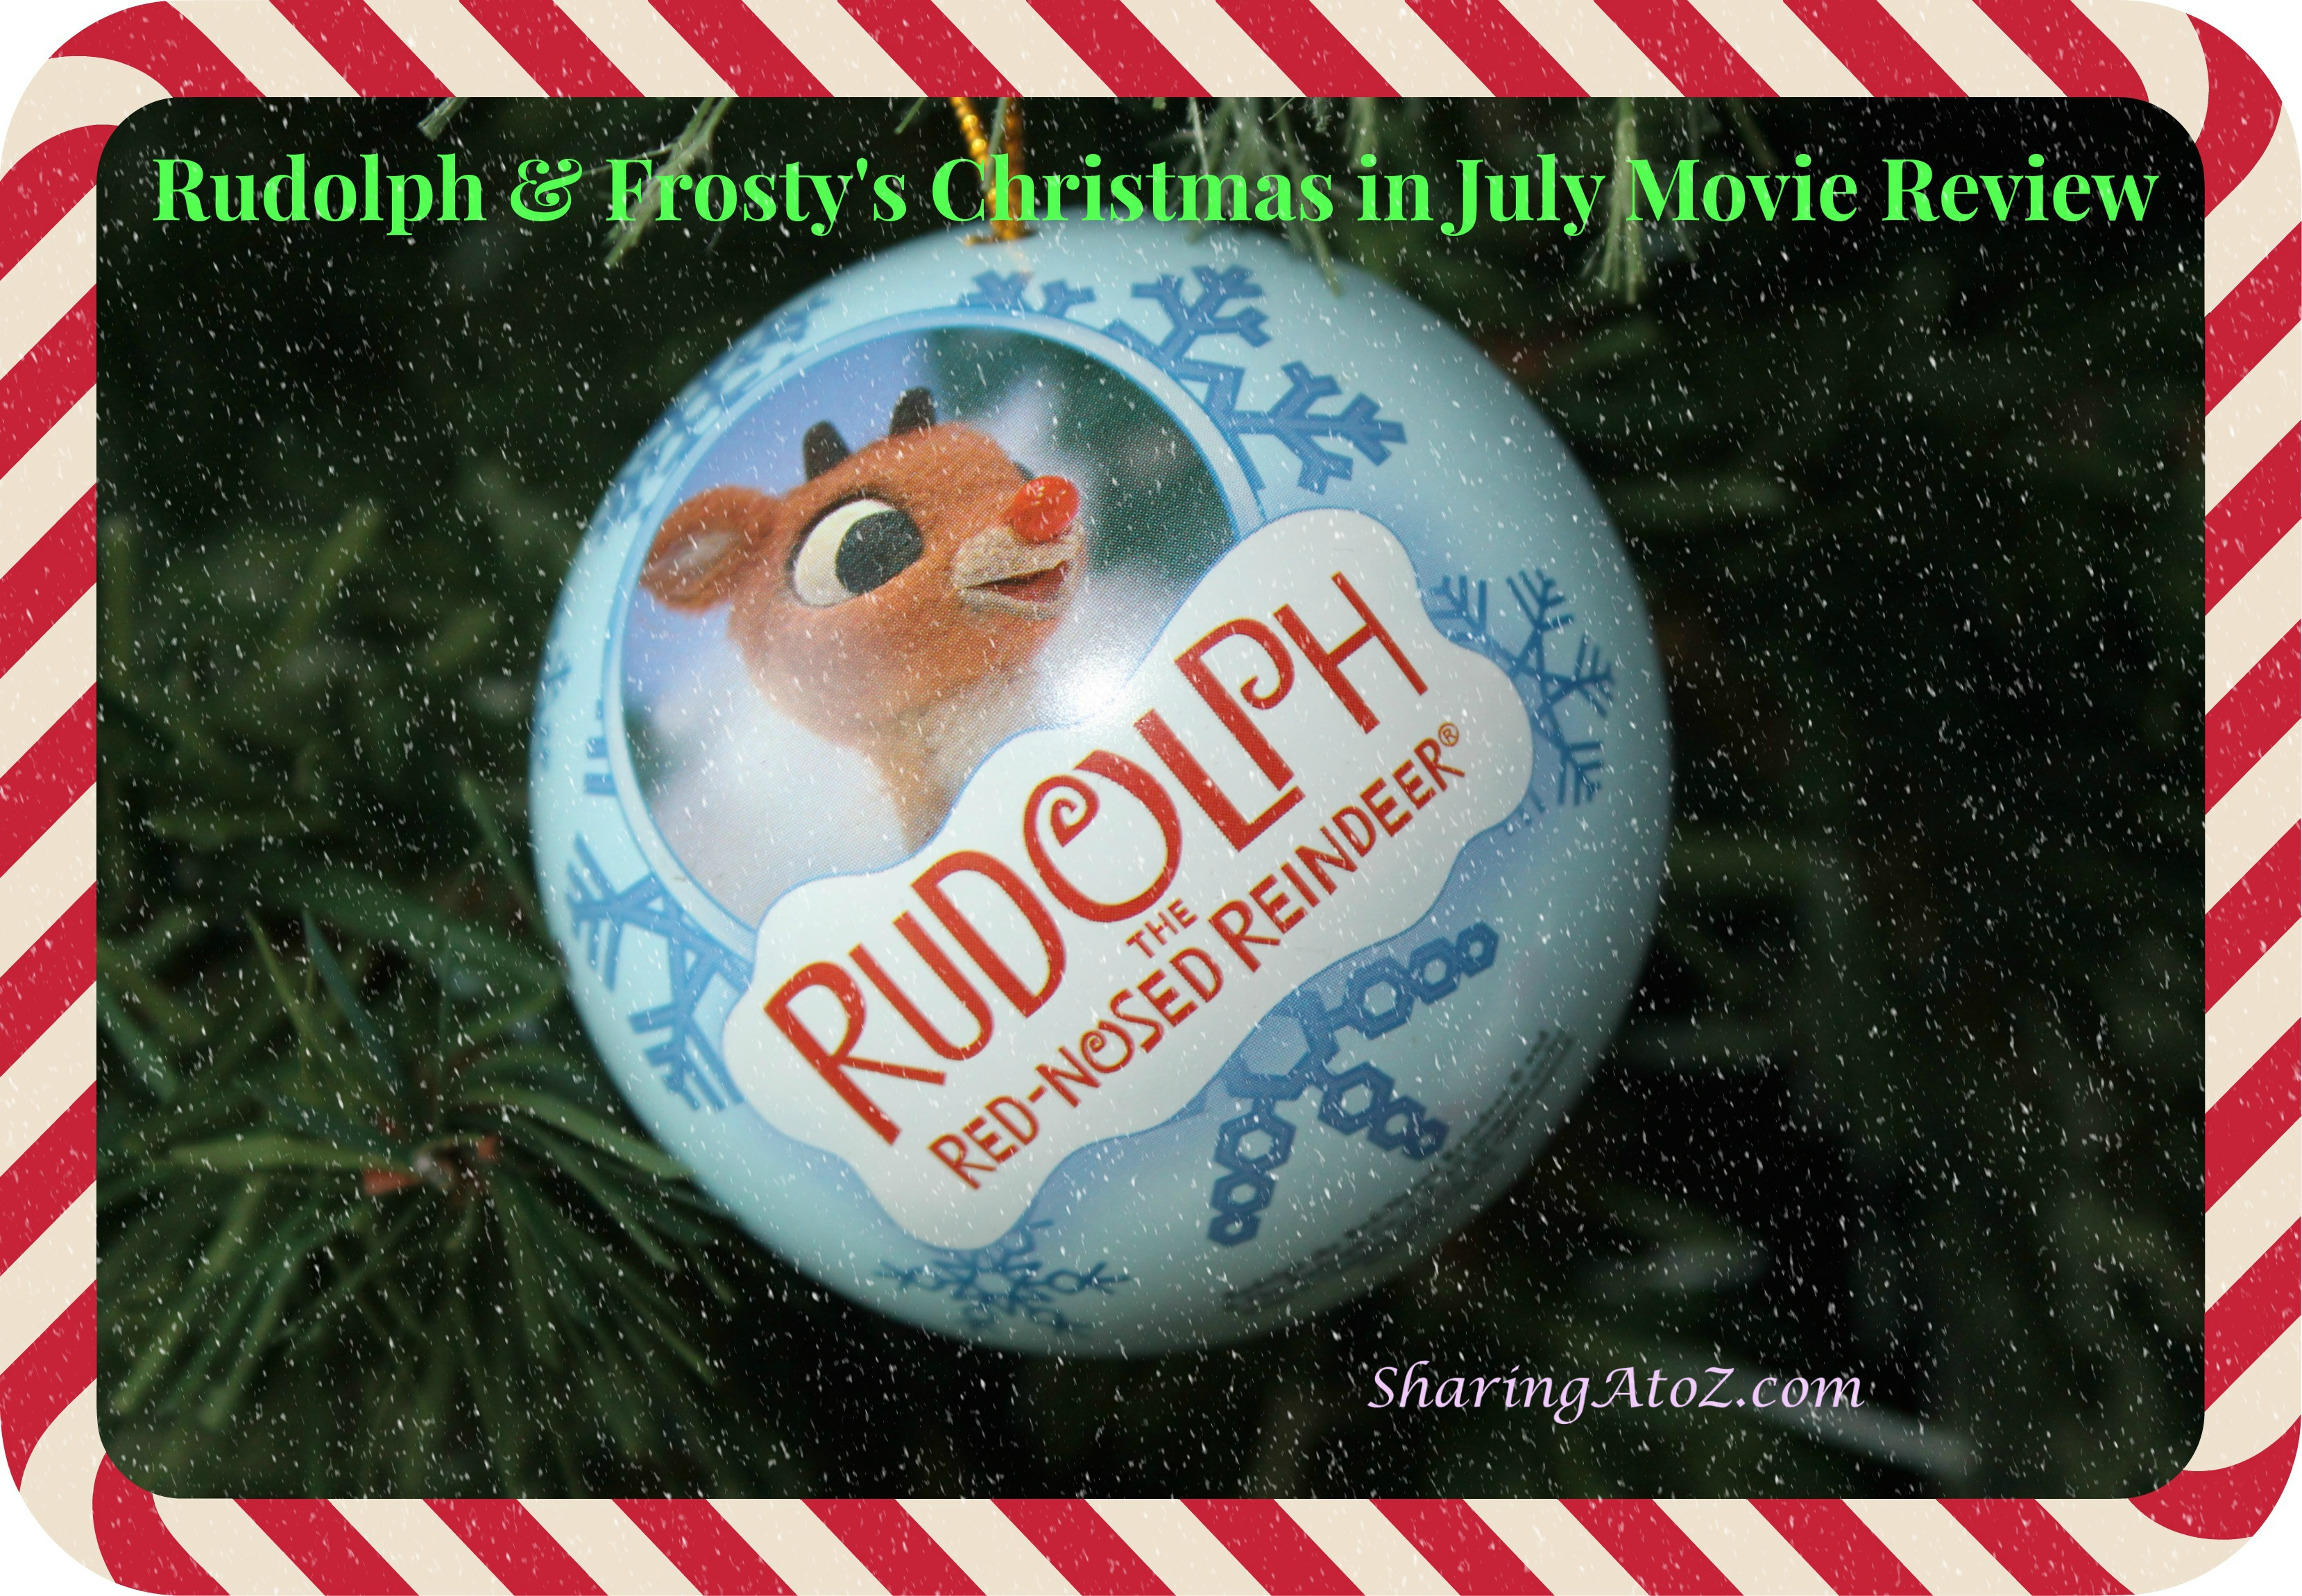 Rudolph And Frostys Christmas In July Dvd.Rudolph Frosty S Christmas In July Movie Review Sharing